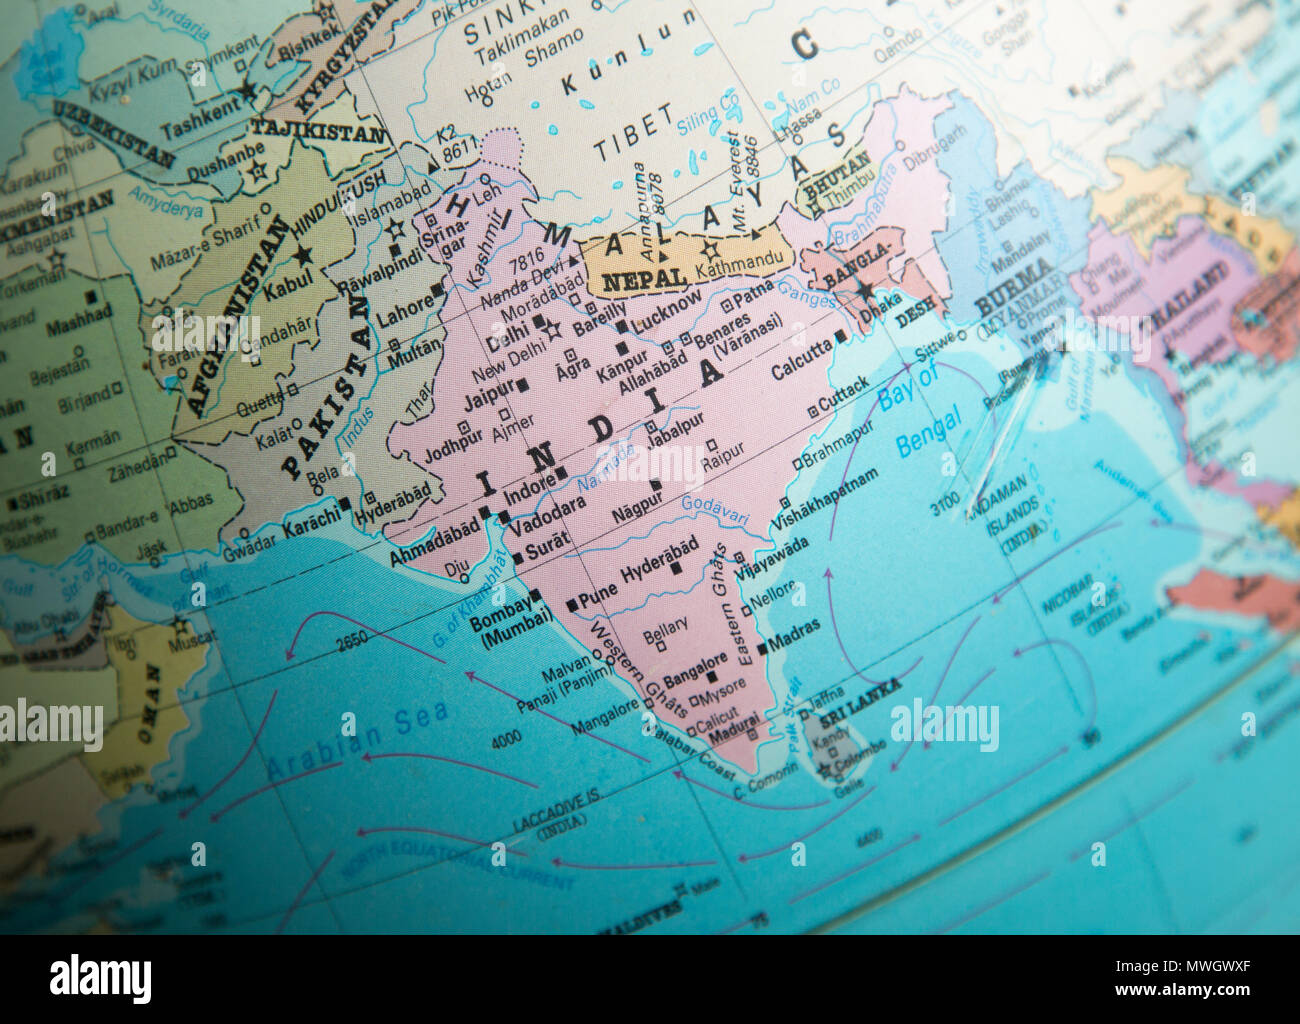 Map Of India And Pakistan Border.India Pakistan Border Map Stock Photos India Pakistan Border Map